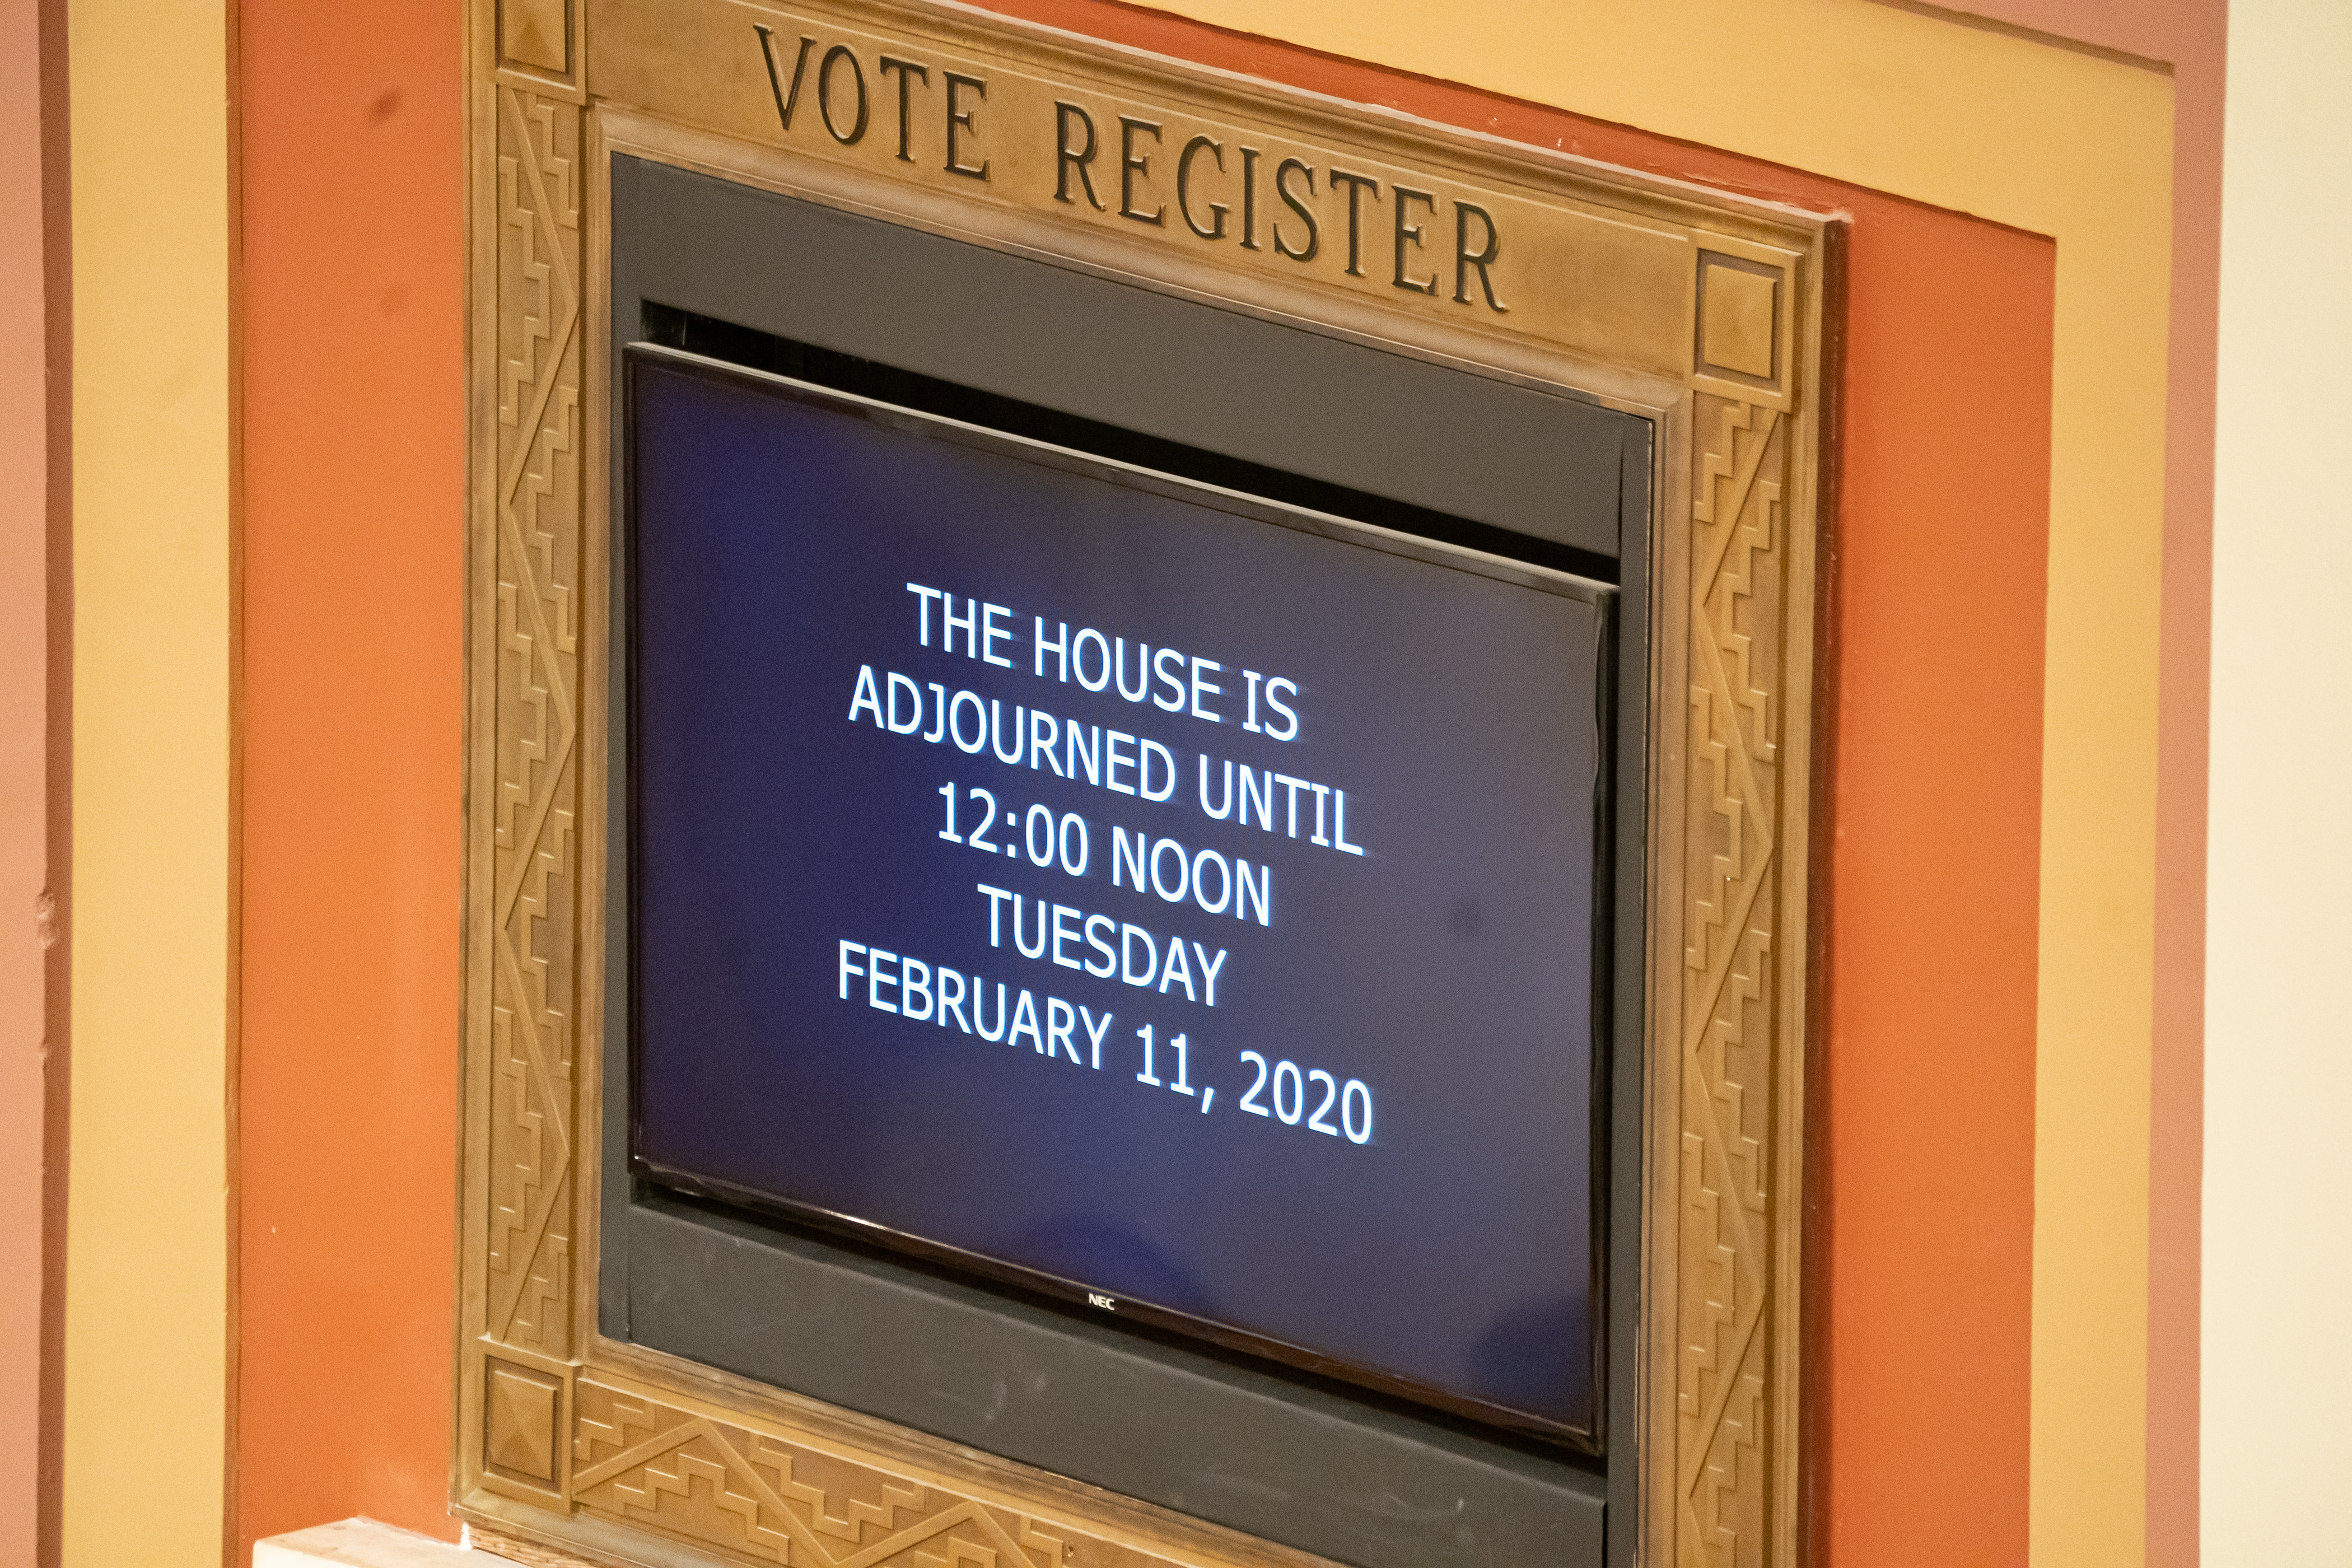 The board in the House Chamber says the House is adjourned until Feb. 11, 2020. A special session was required to finish much of the work that was not completed before the regular session ended.